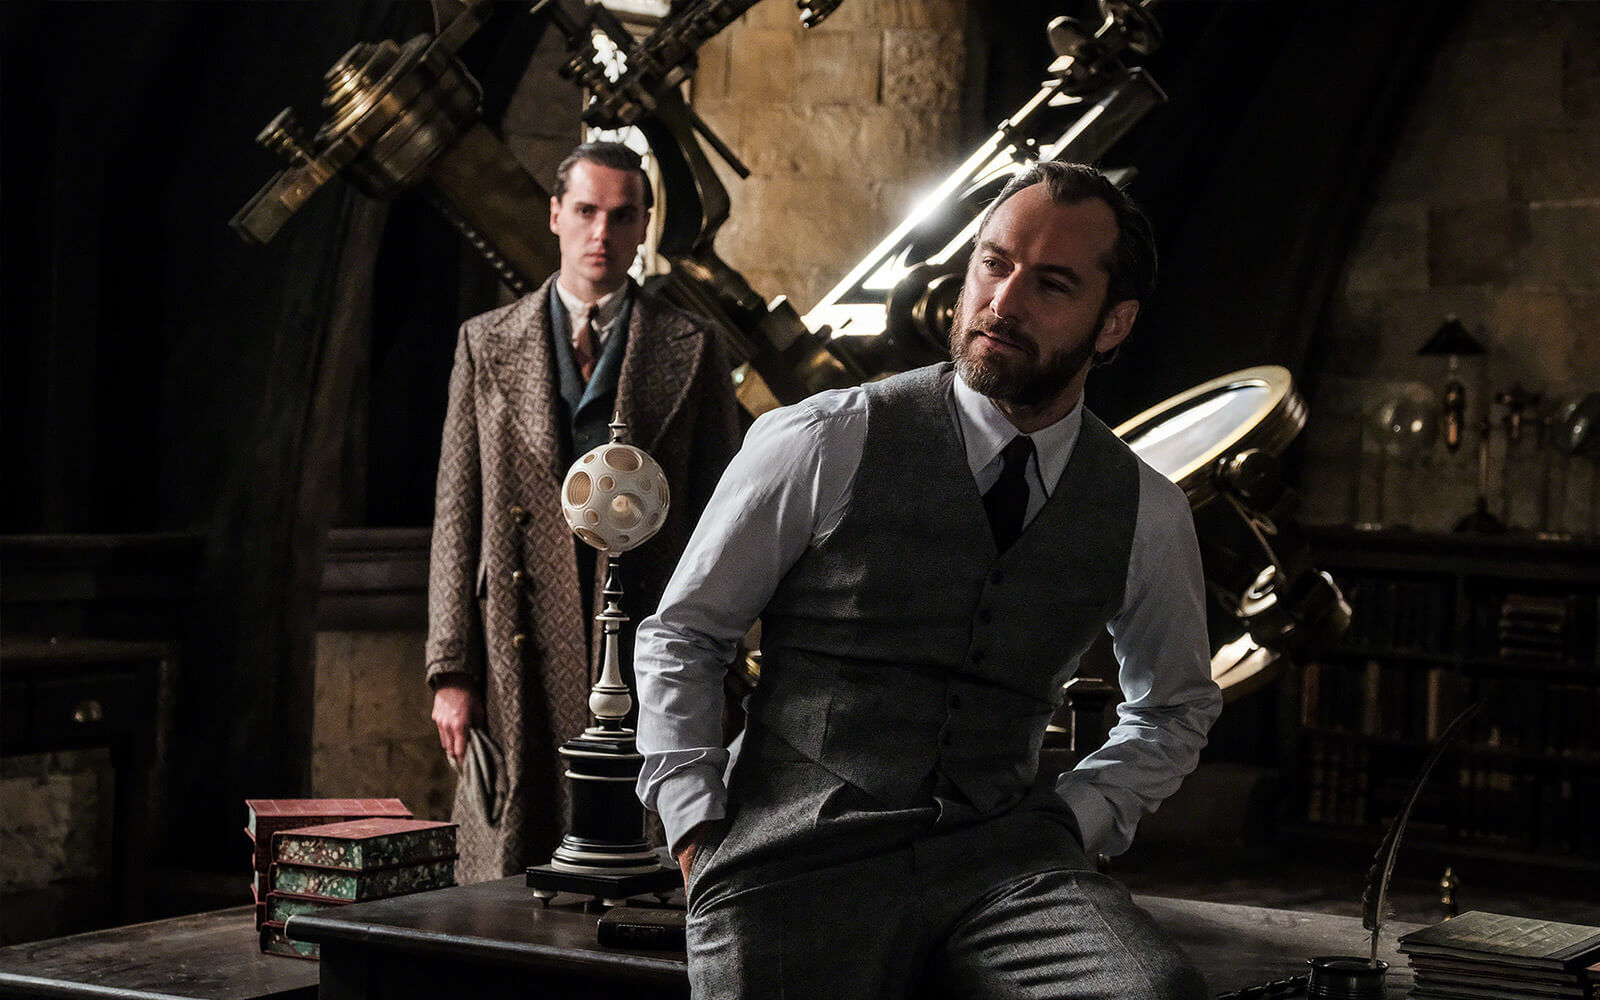 Jude Law as Albus Dumbledore in FANTASTIC BEASTS: THE CRIMES OF GRINDELWALD (2018)